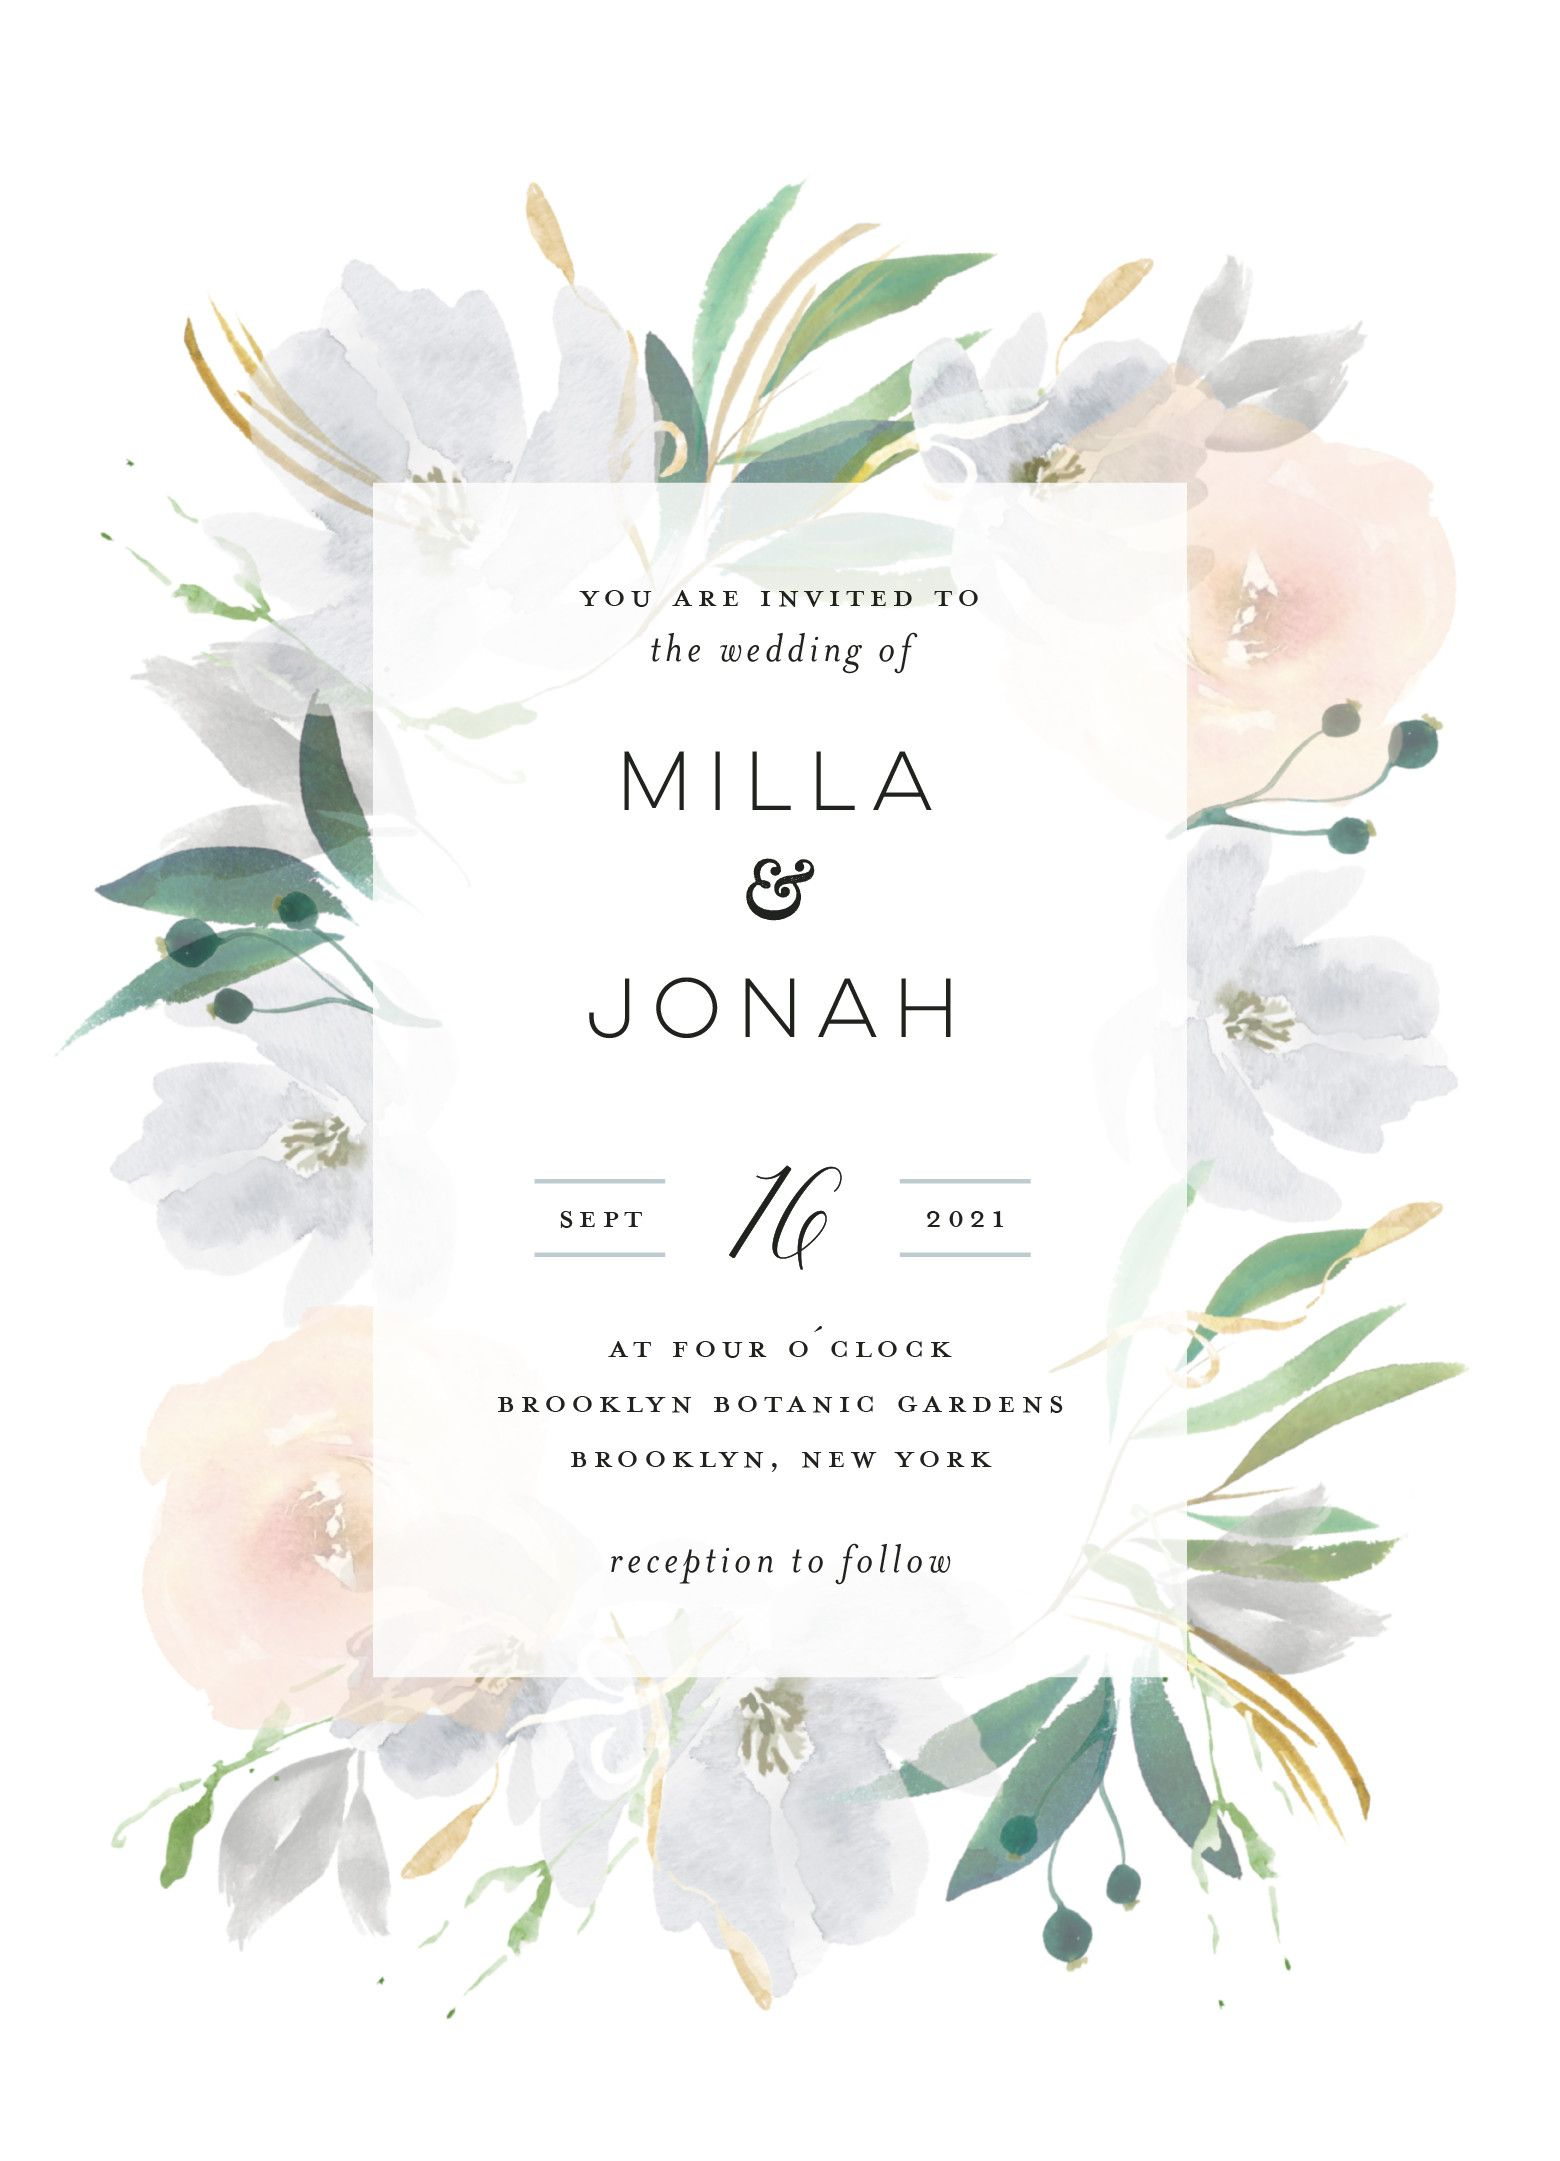 Grande Botanique Customizable Wedding Invitations In Gray By Bonjour Paper Minted Wedding Invitations Wedding Invitation Design Wedding Invitation Cards